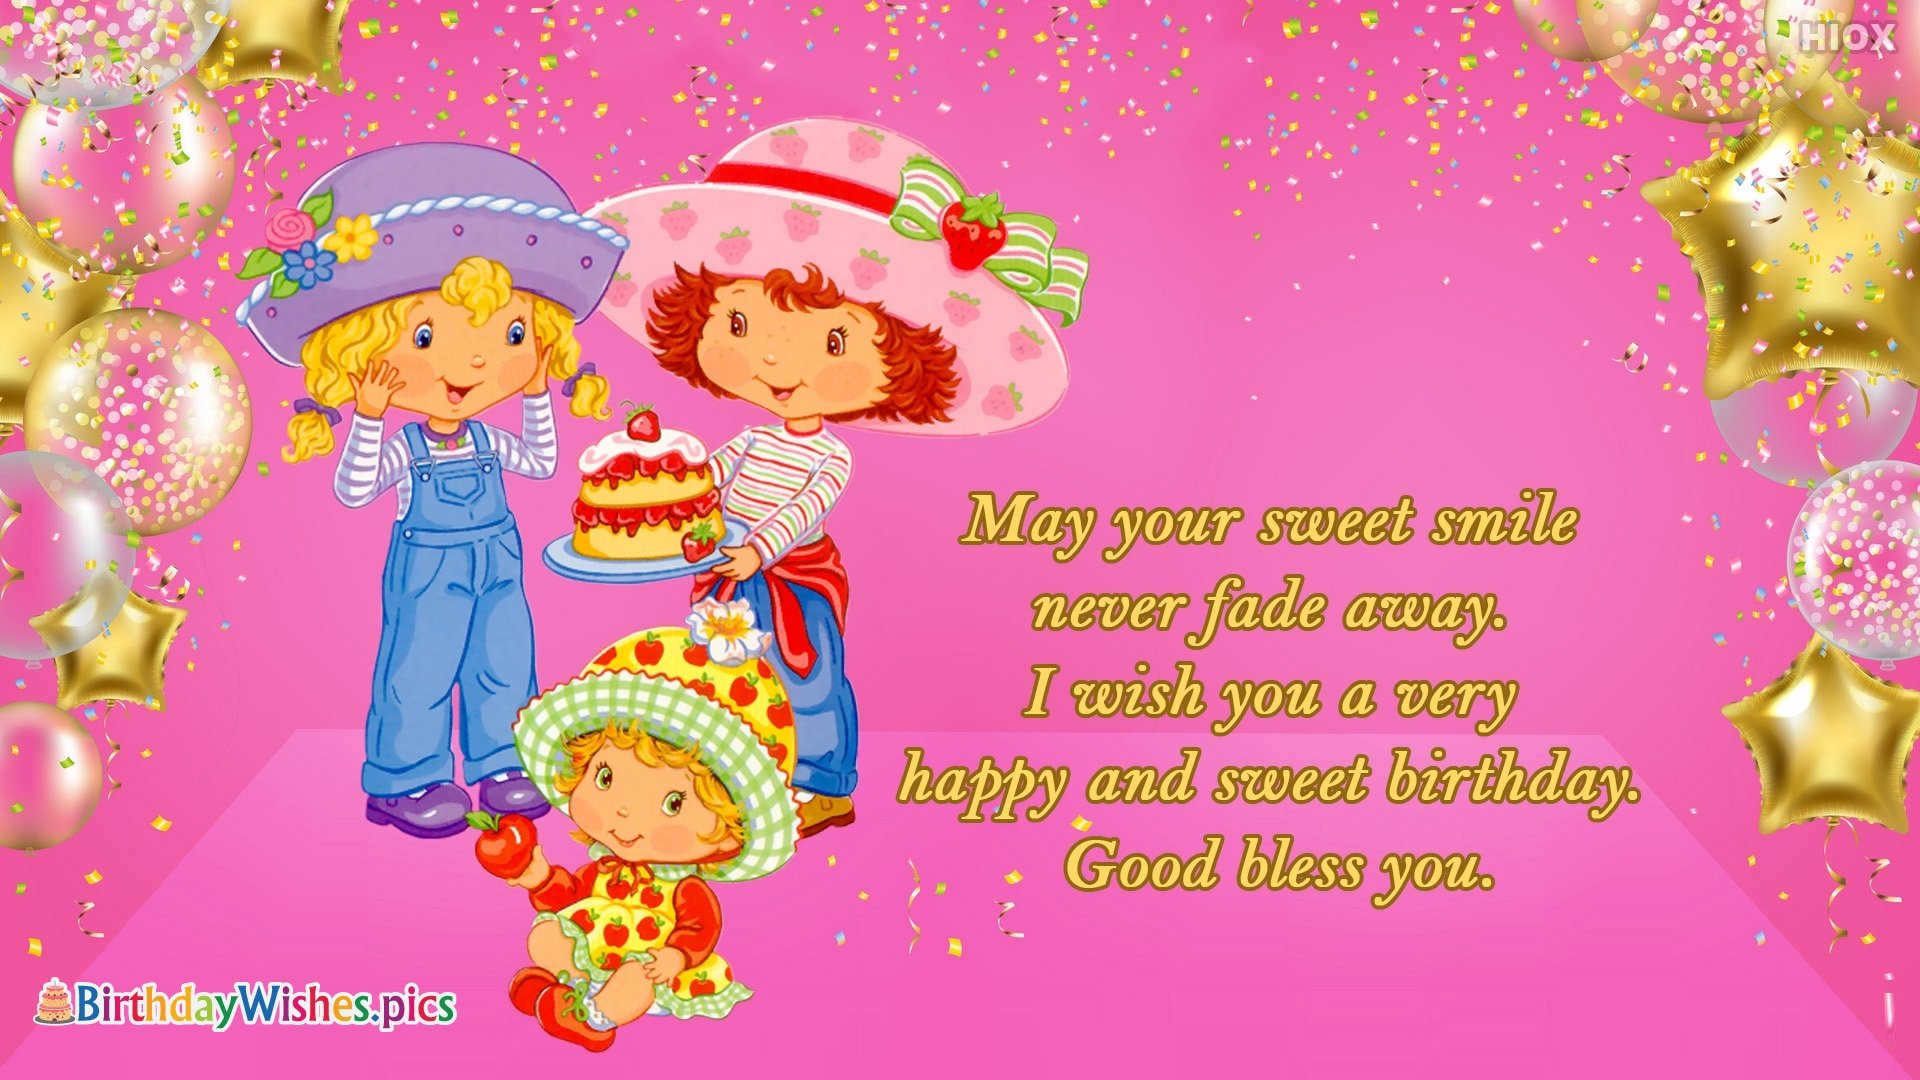 Wish You A Very Happy And Sweet Birthday. Good Bless You.